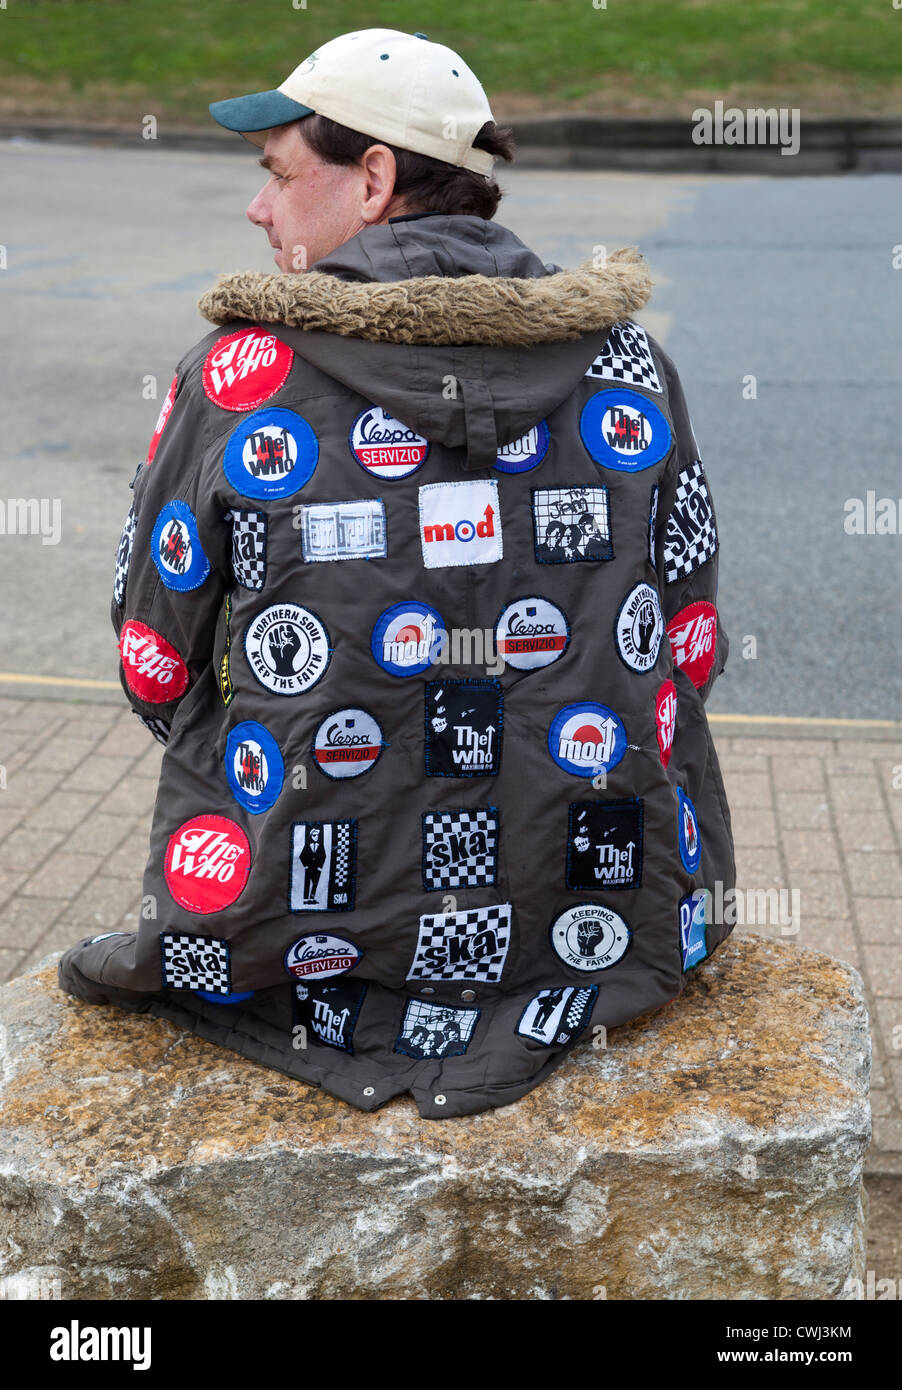 Decorated Parka with Mod Patches International Scooter Rally Isle of Wight England UK - Stock Image